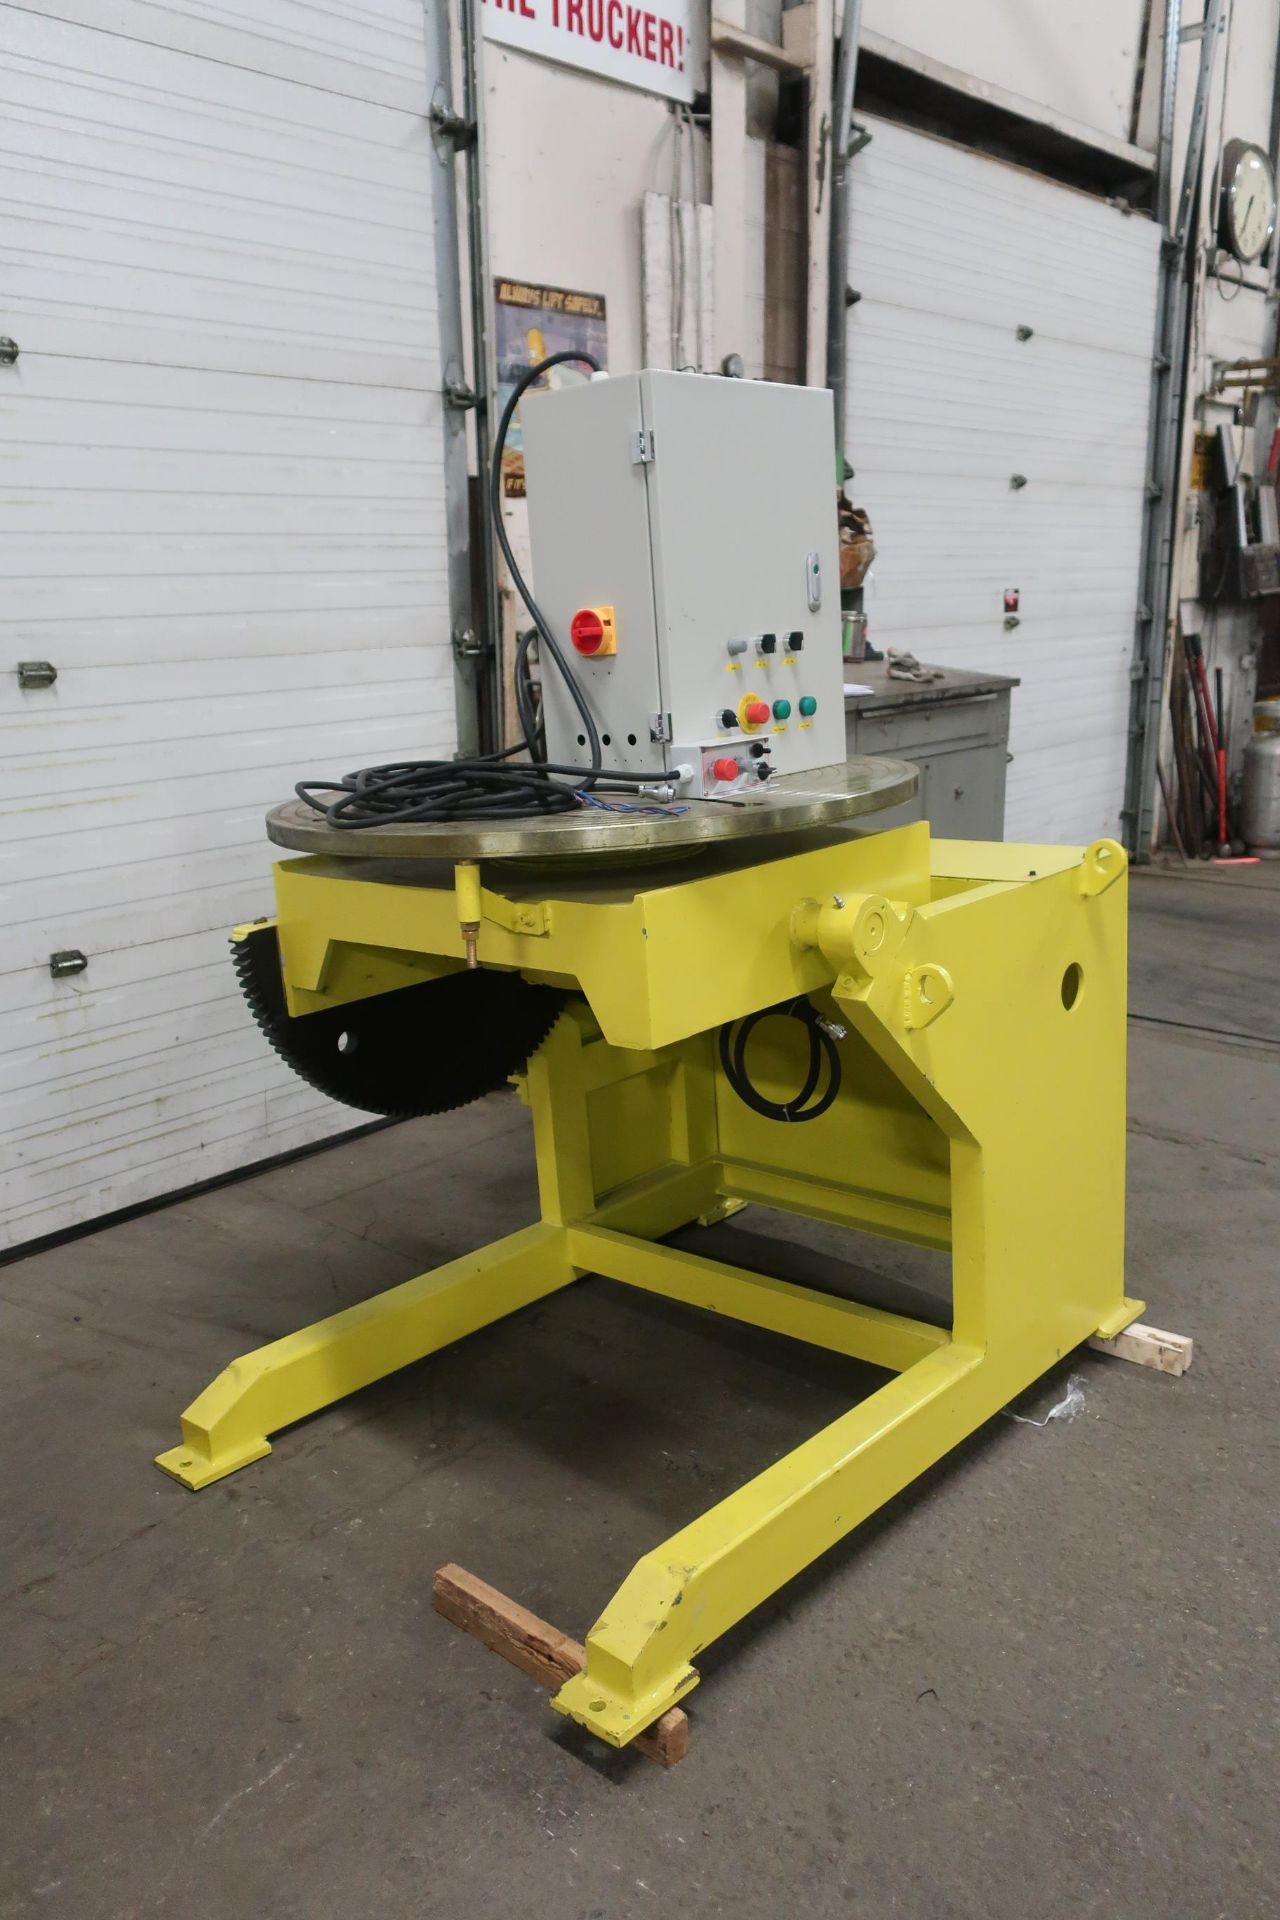 Verner model VD-2500 WELDING POSITIONER 2500lbs capacity - tilt and rotate with variable speed drive